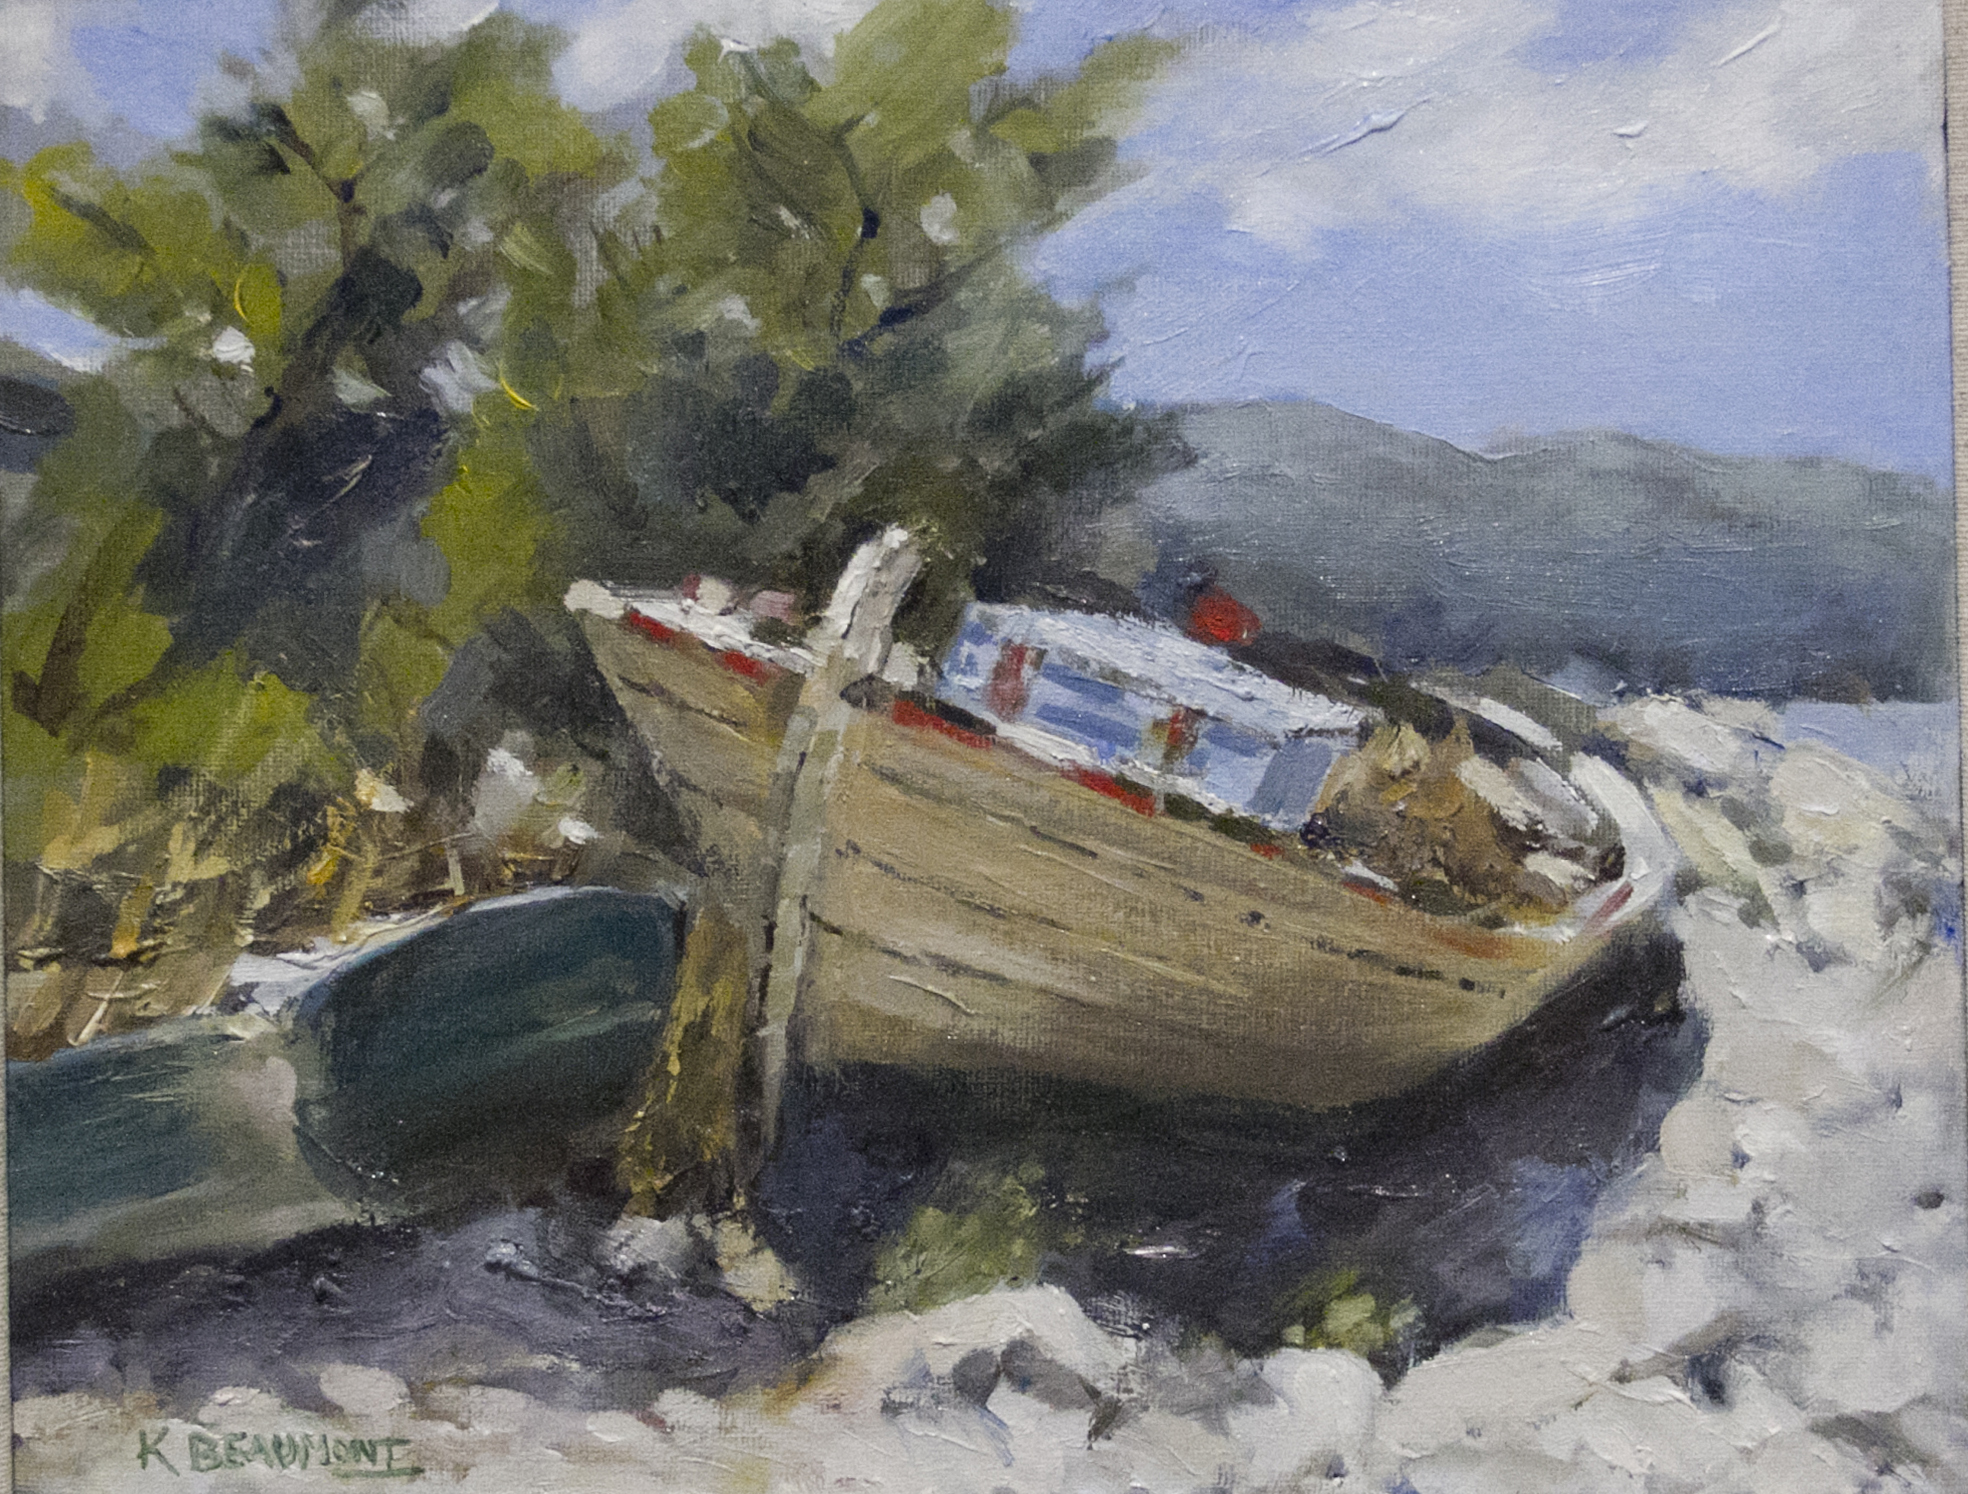 Old Boats at Kefalonia by Ken Beaumont